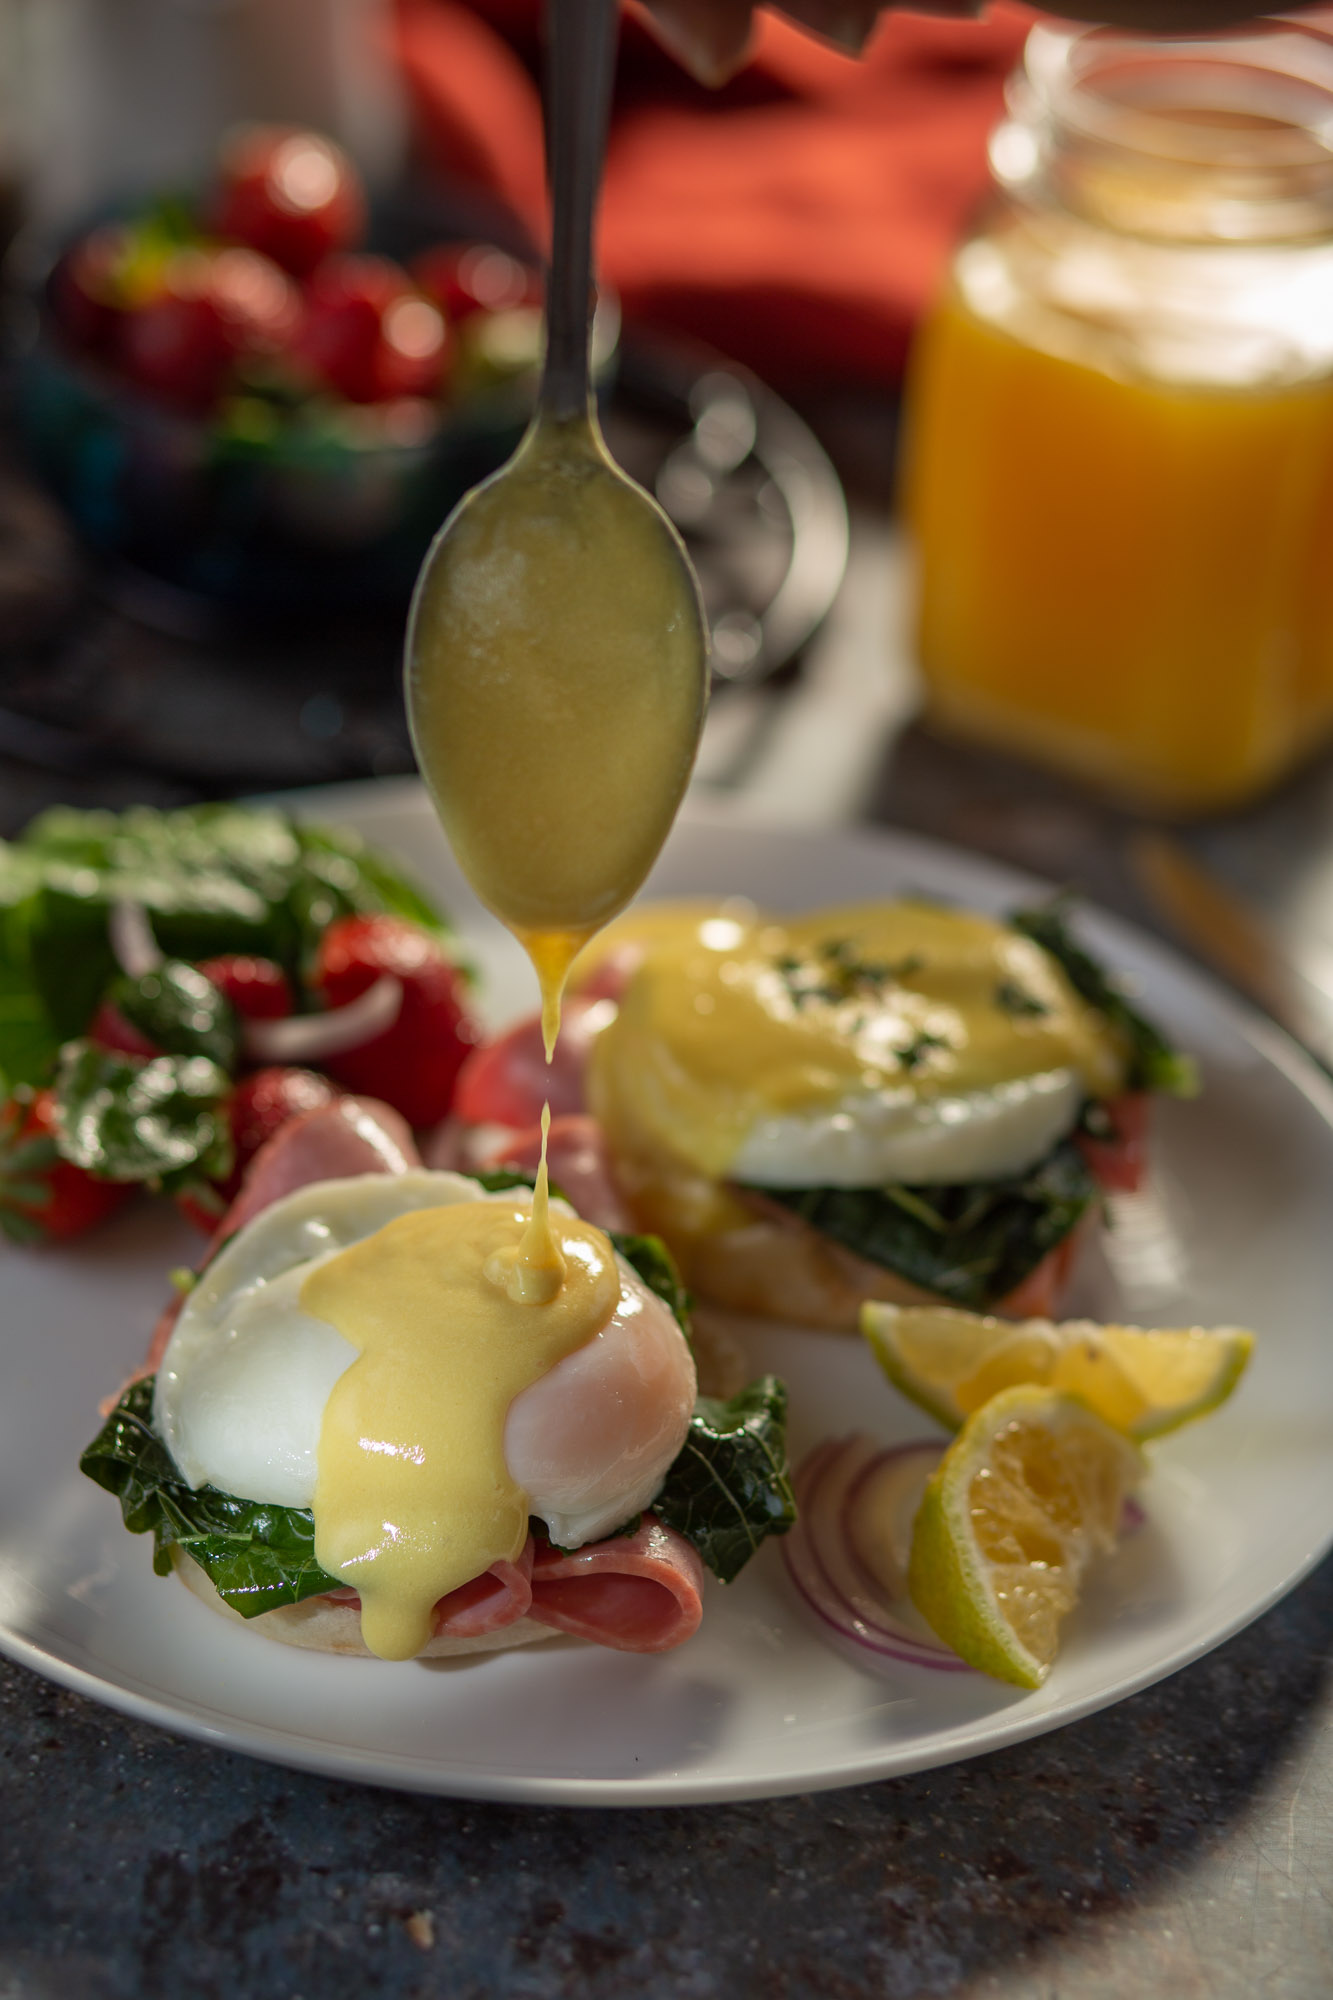 Eggs Benedict with Smoked Deli Slices